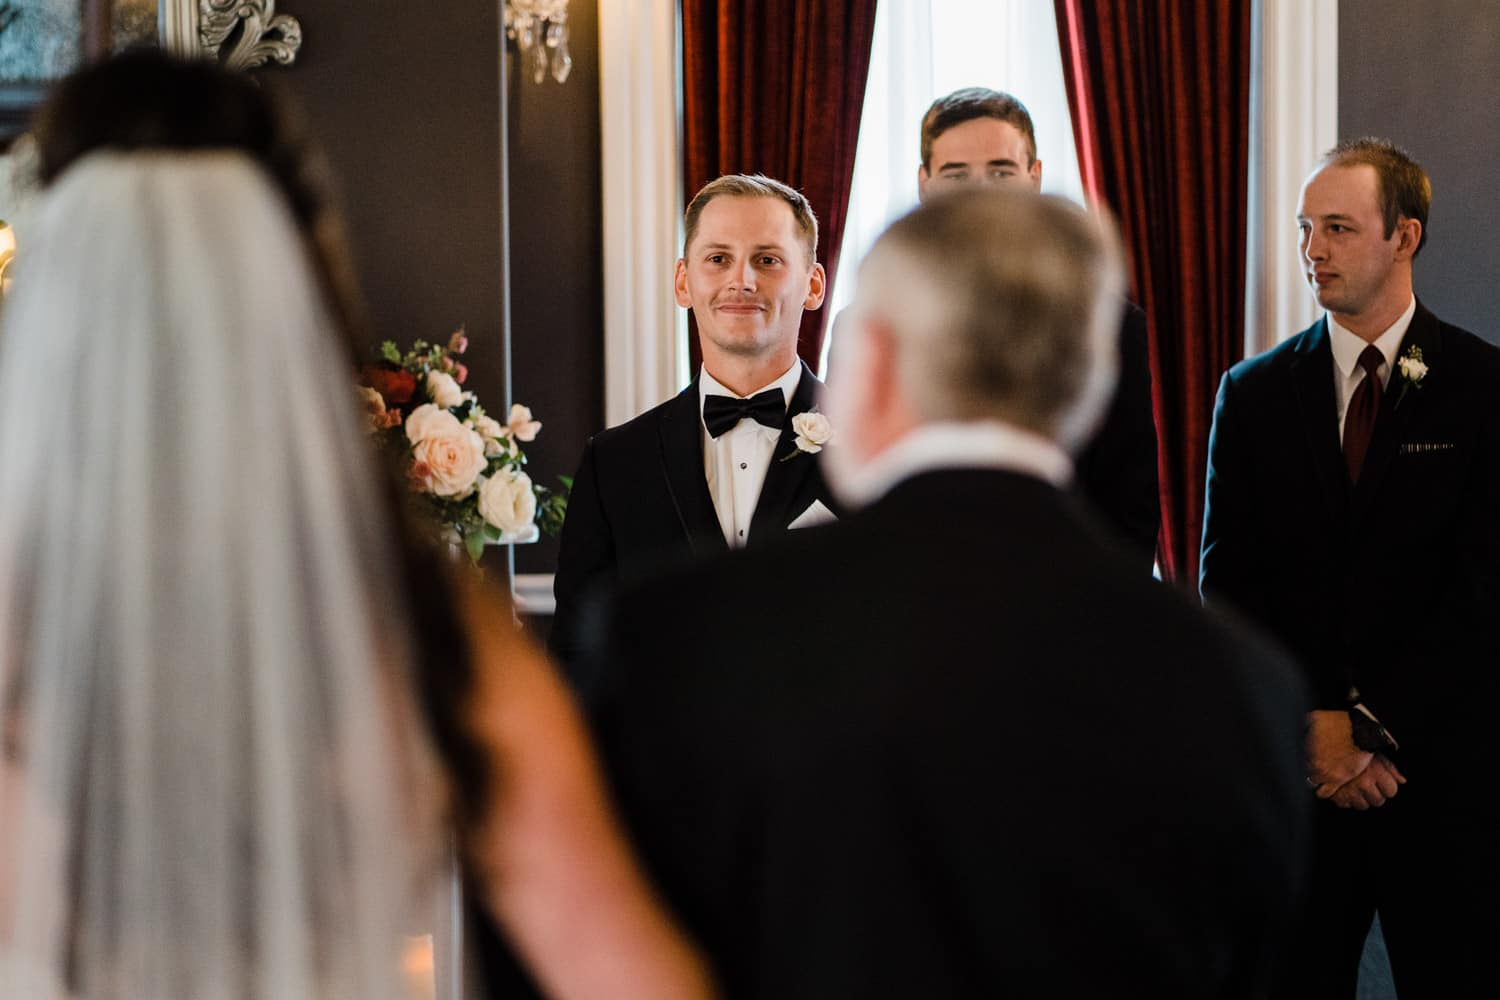 groom watches his bride come down the aisle